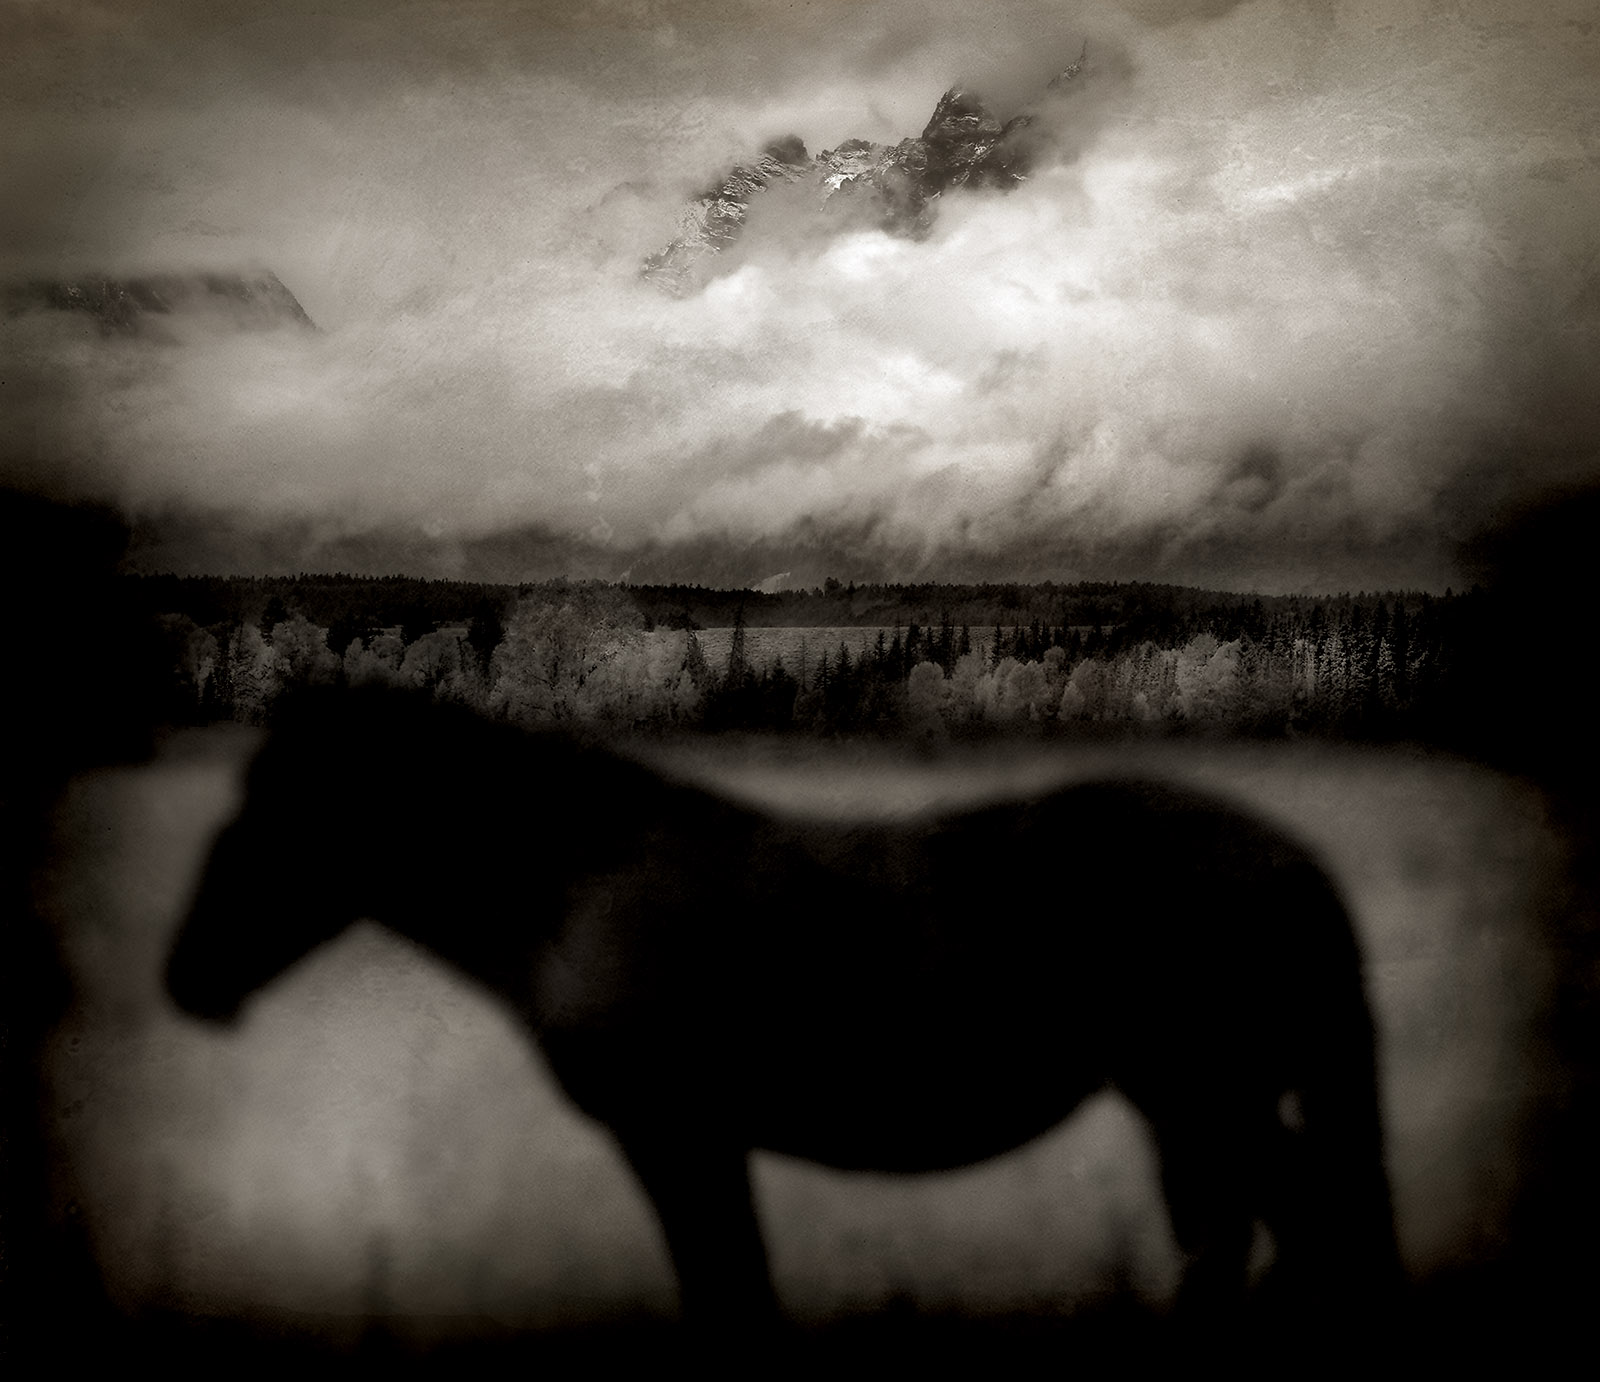 'Dark Horse,' Wyoming, 2005; photograph by Jack Spencer from his book This Land: An American Portrait, published by University of Texas Press